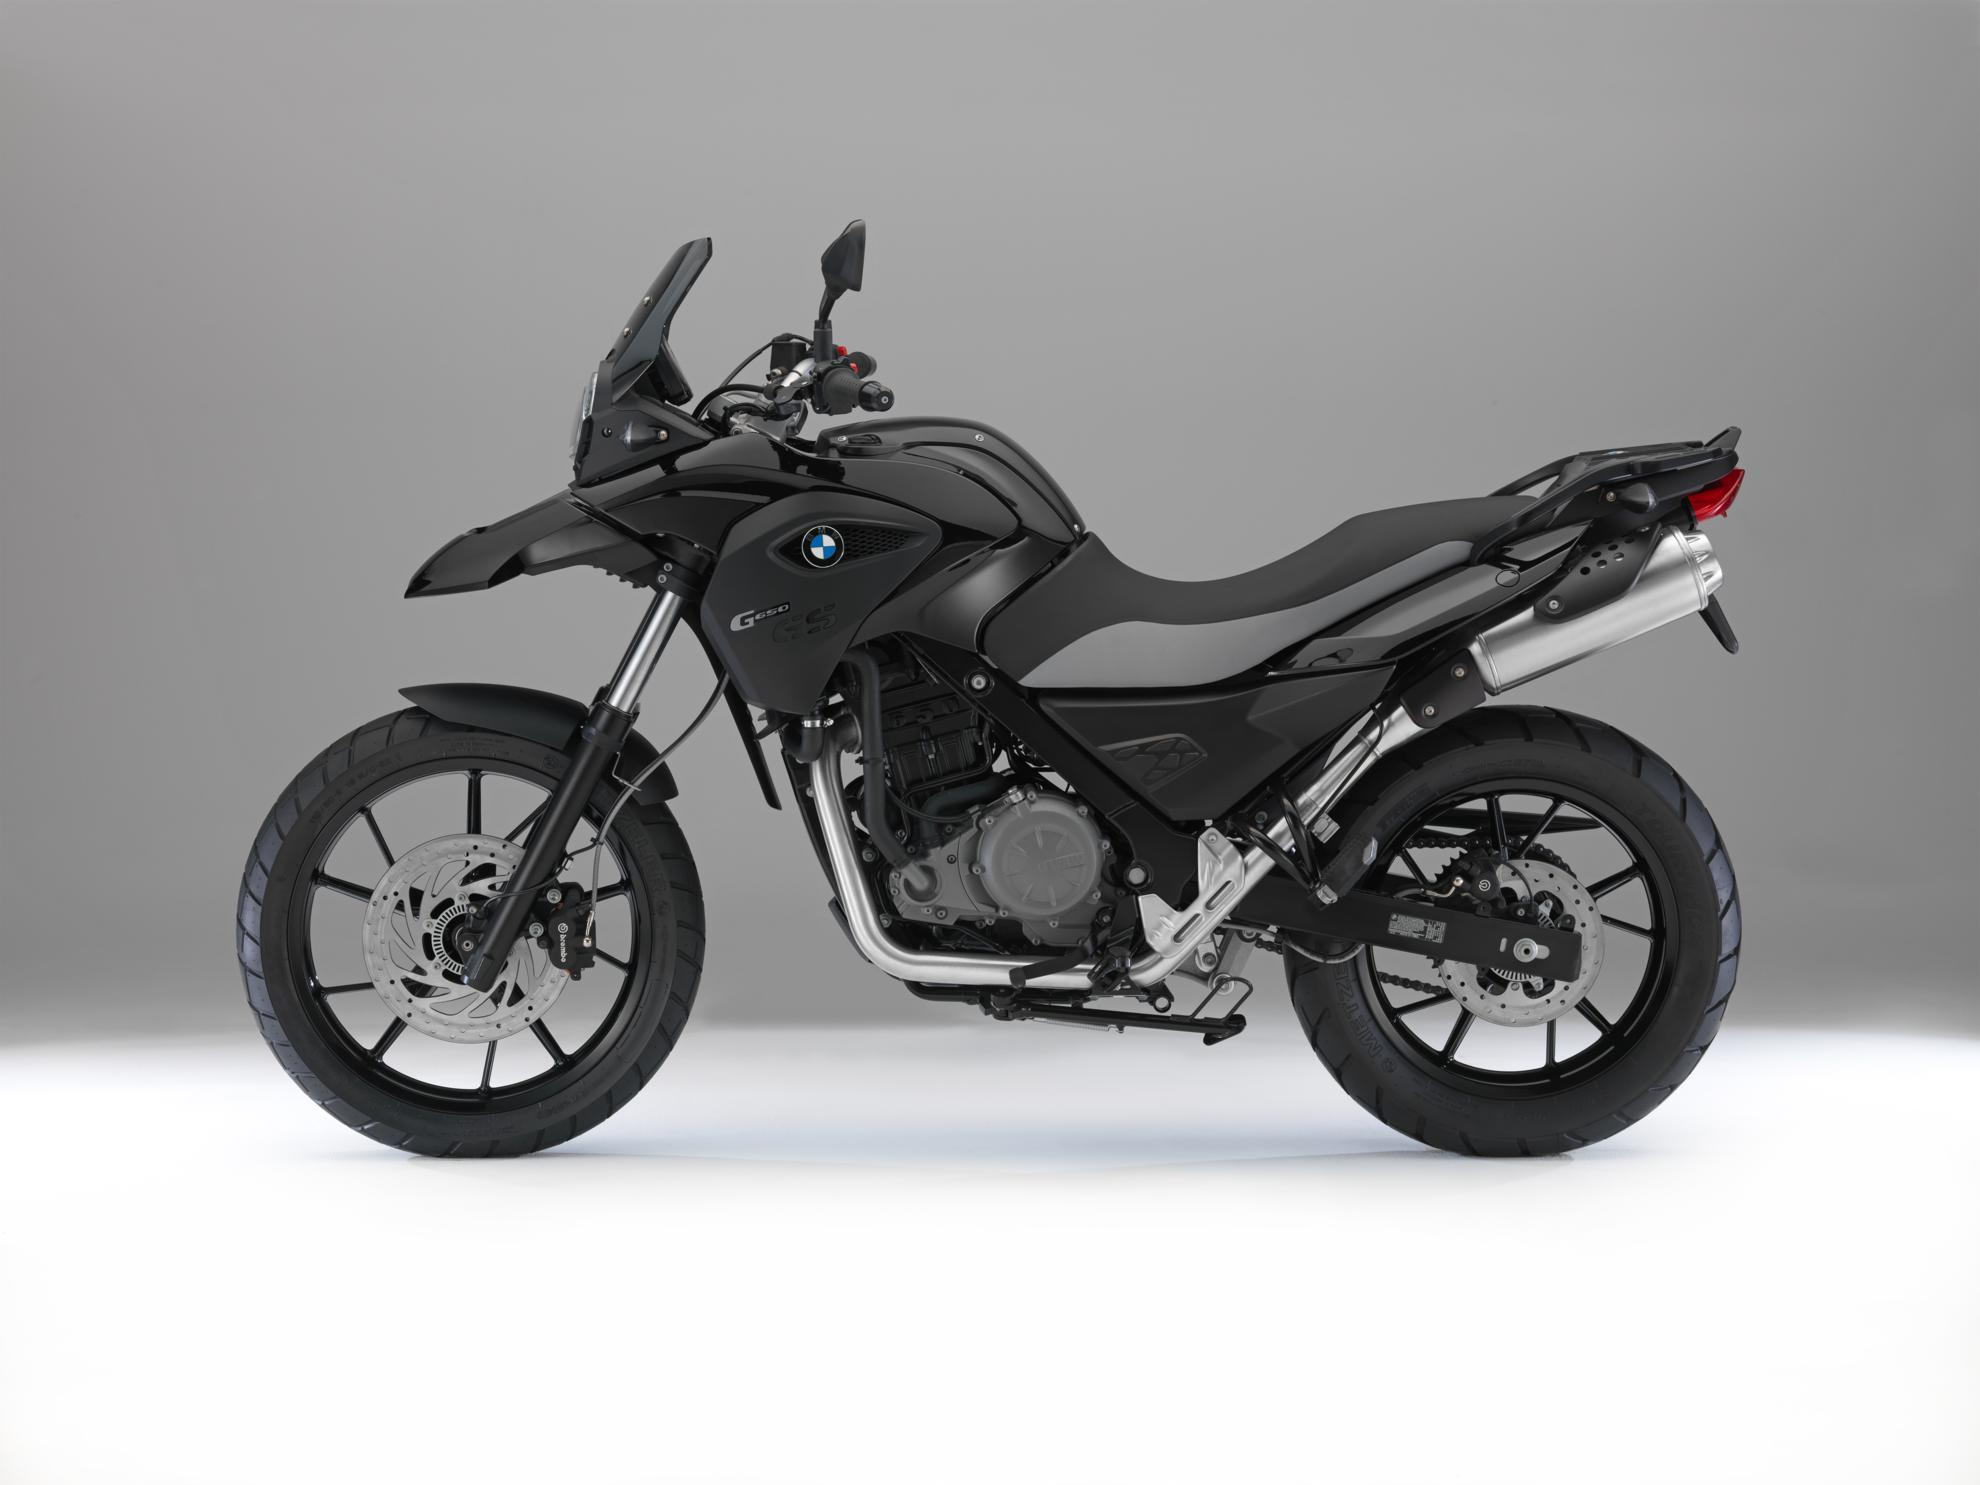 BMW Motorcycle G 650 GS